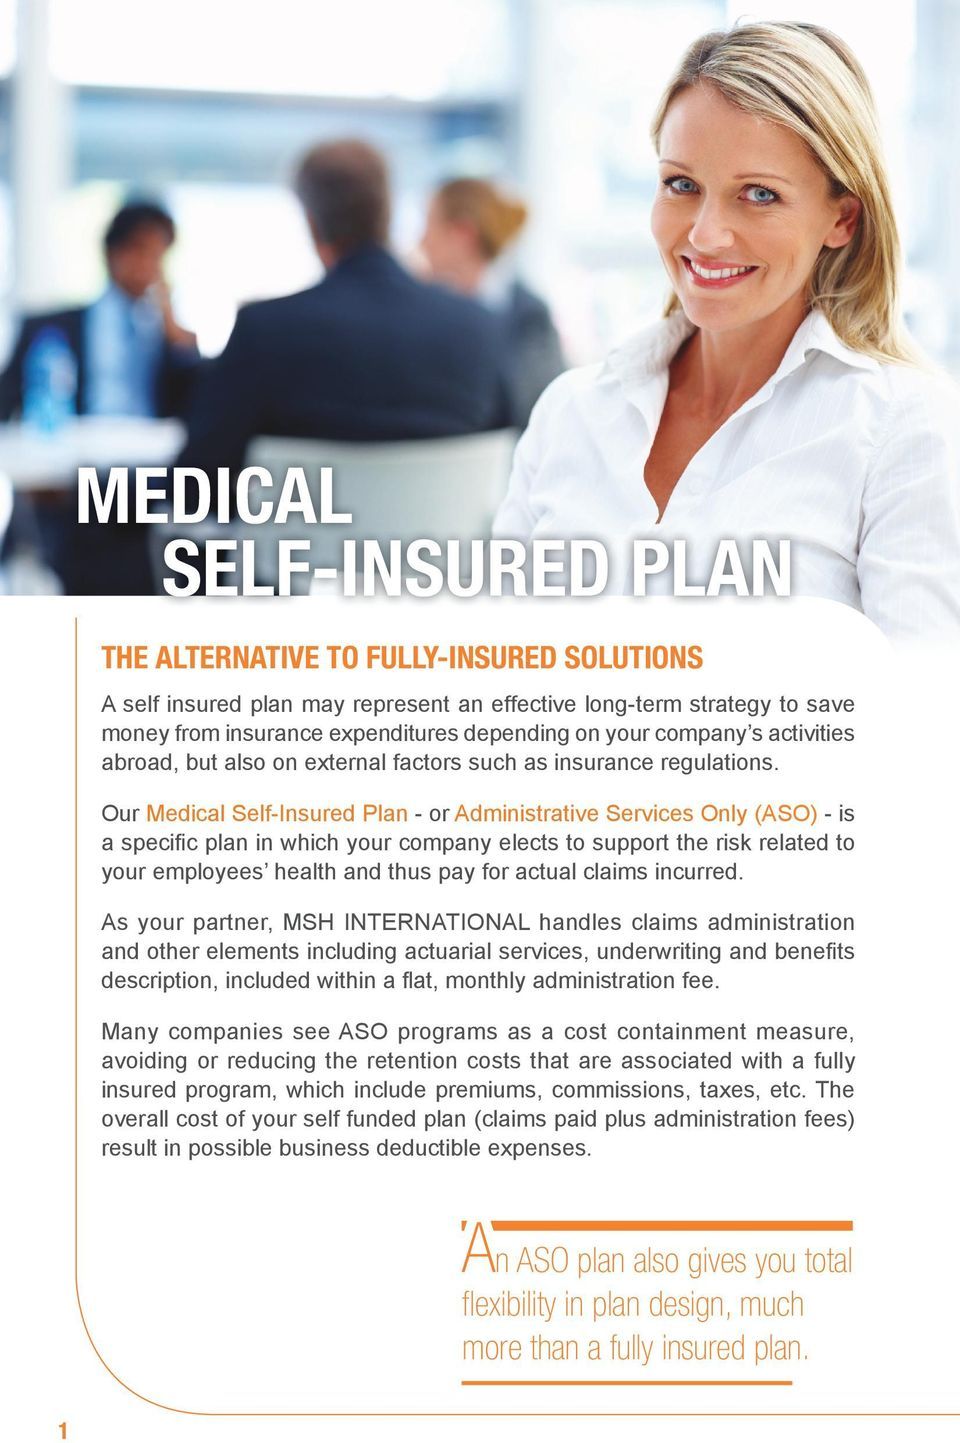 Our Medical Self-Insured Plan - or Administrative Services Only (ASO) - is a specific plan in which your company elects to support the risk related to your employees health and thus pay for actual